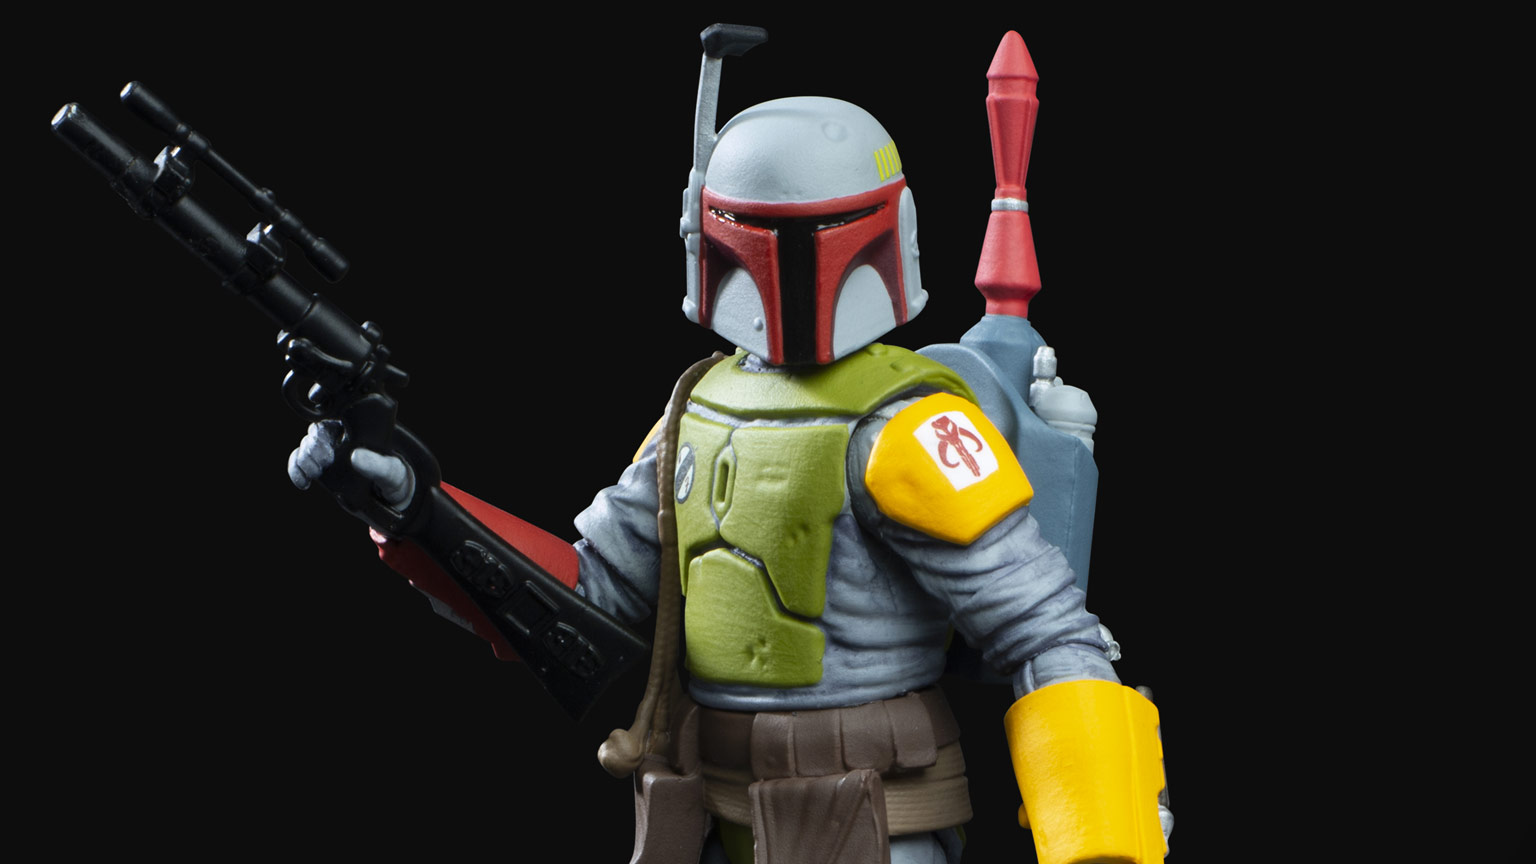 Hasbro Kenner-Inspired Black Series Boba Fett SDCC exclusive